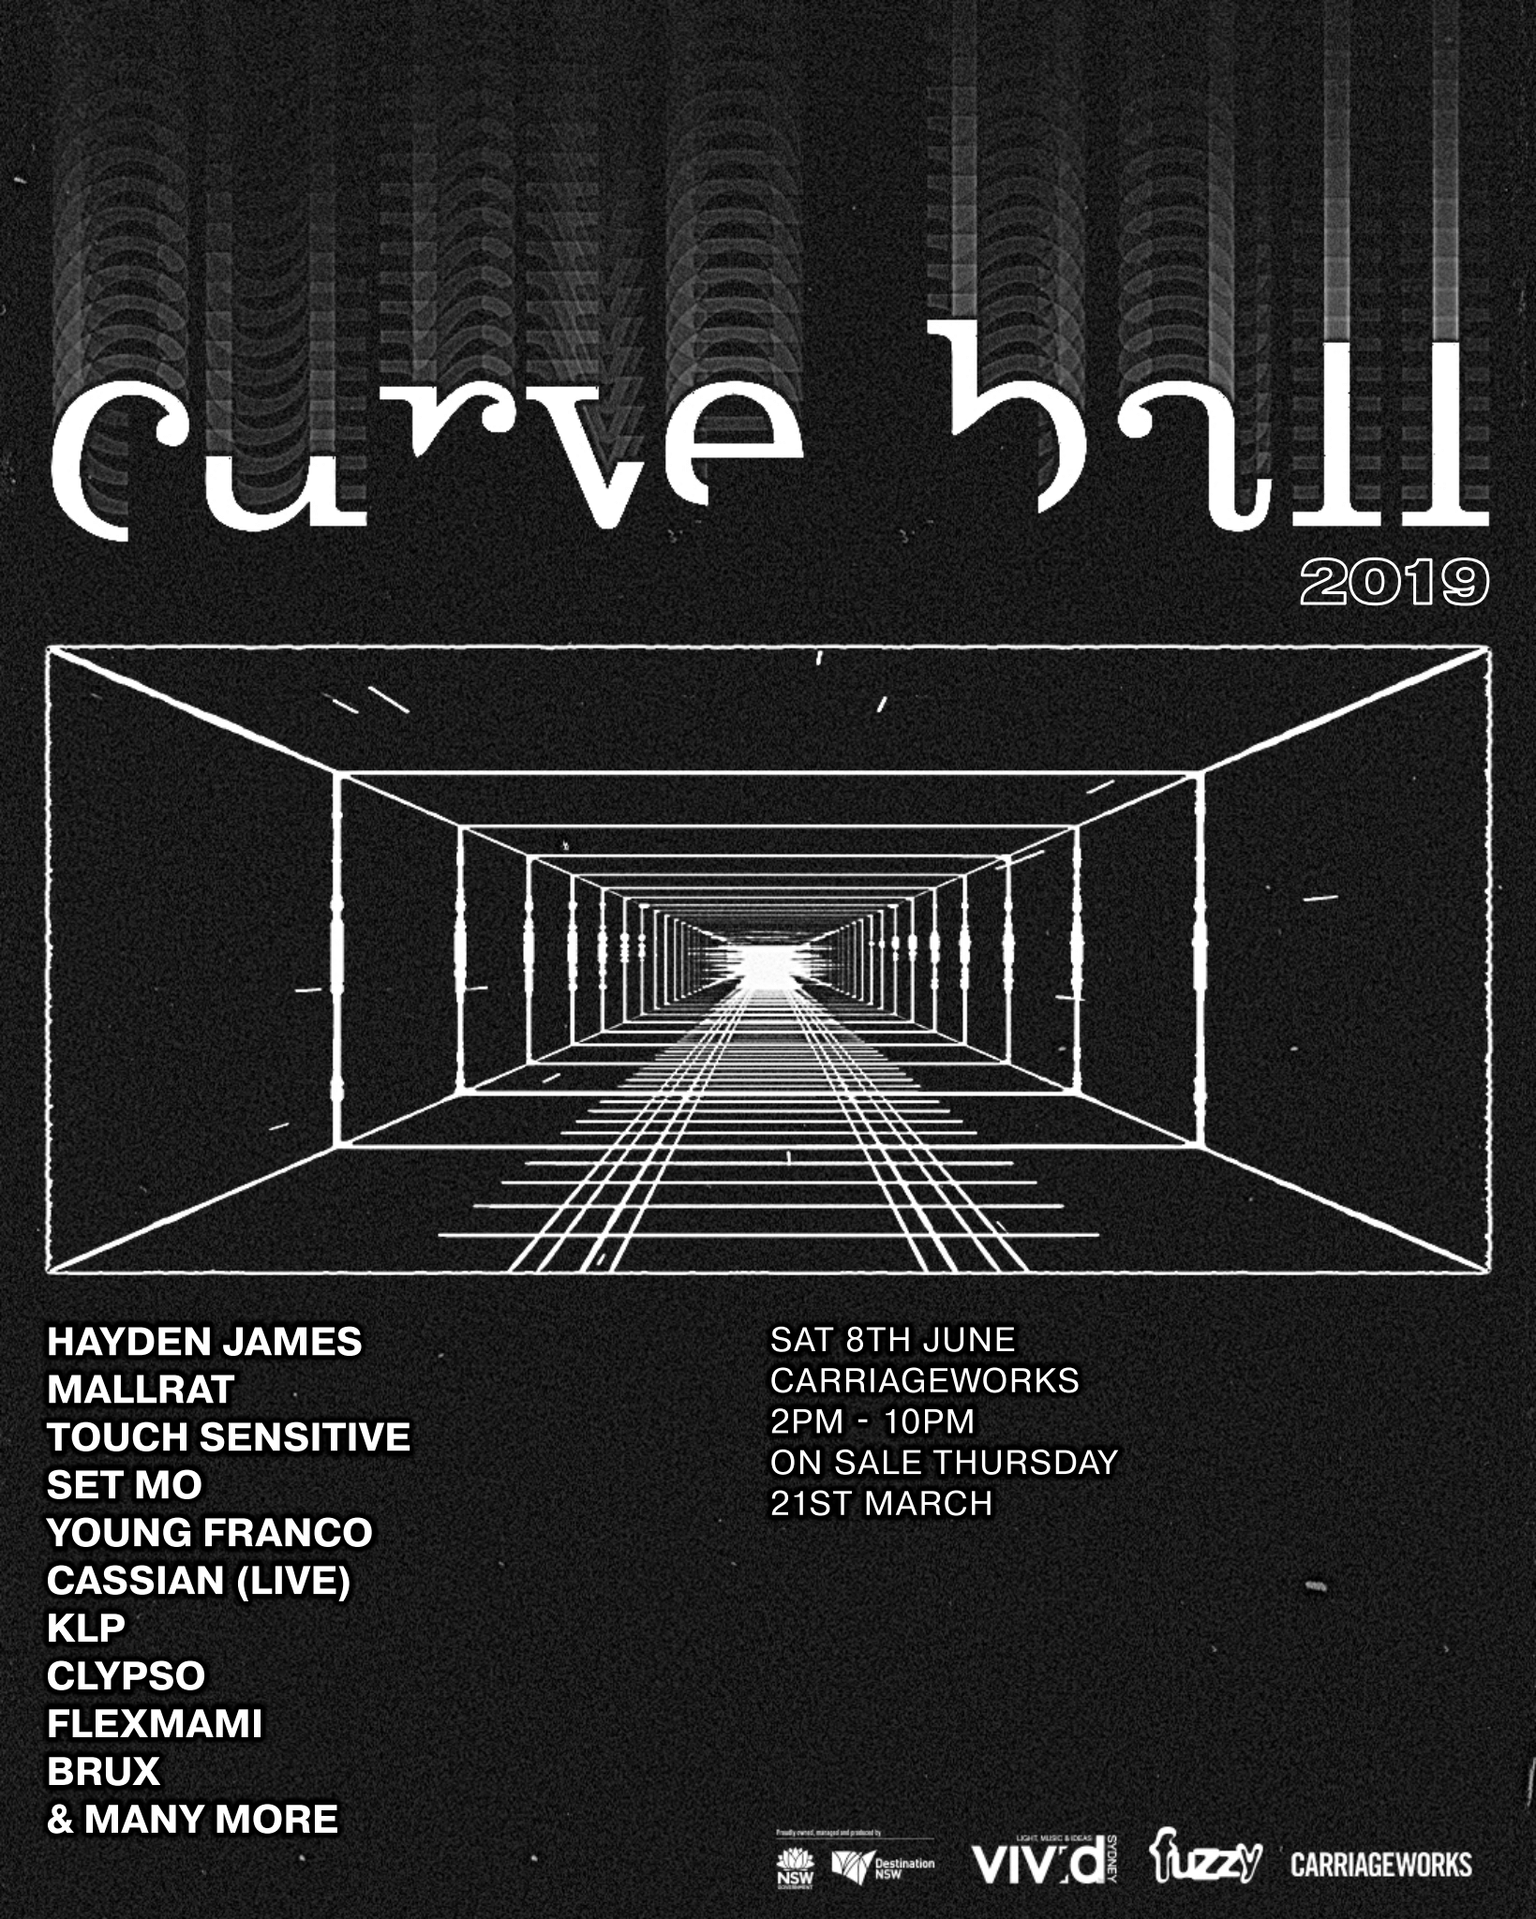 Curve Ball 2019 Lineup